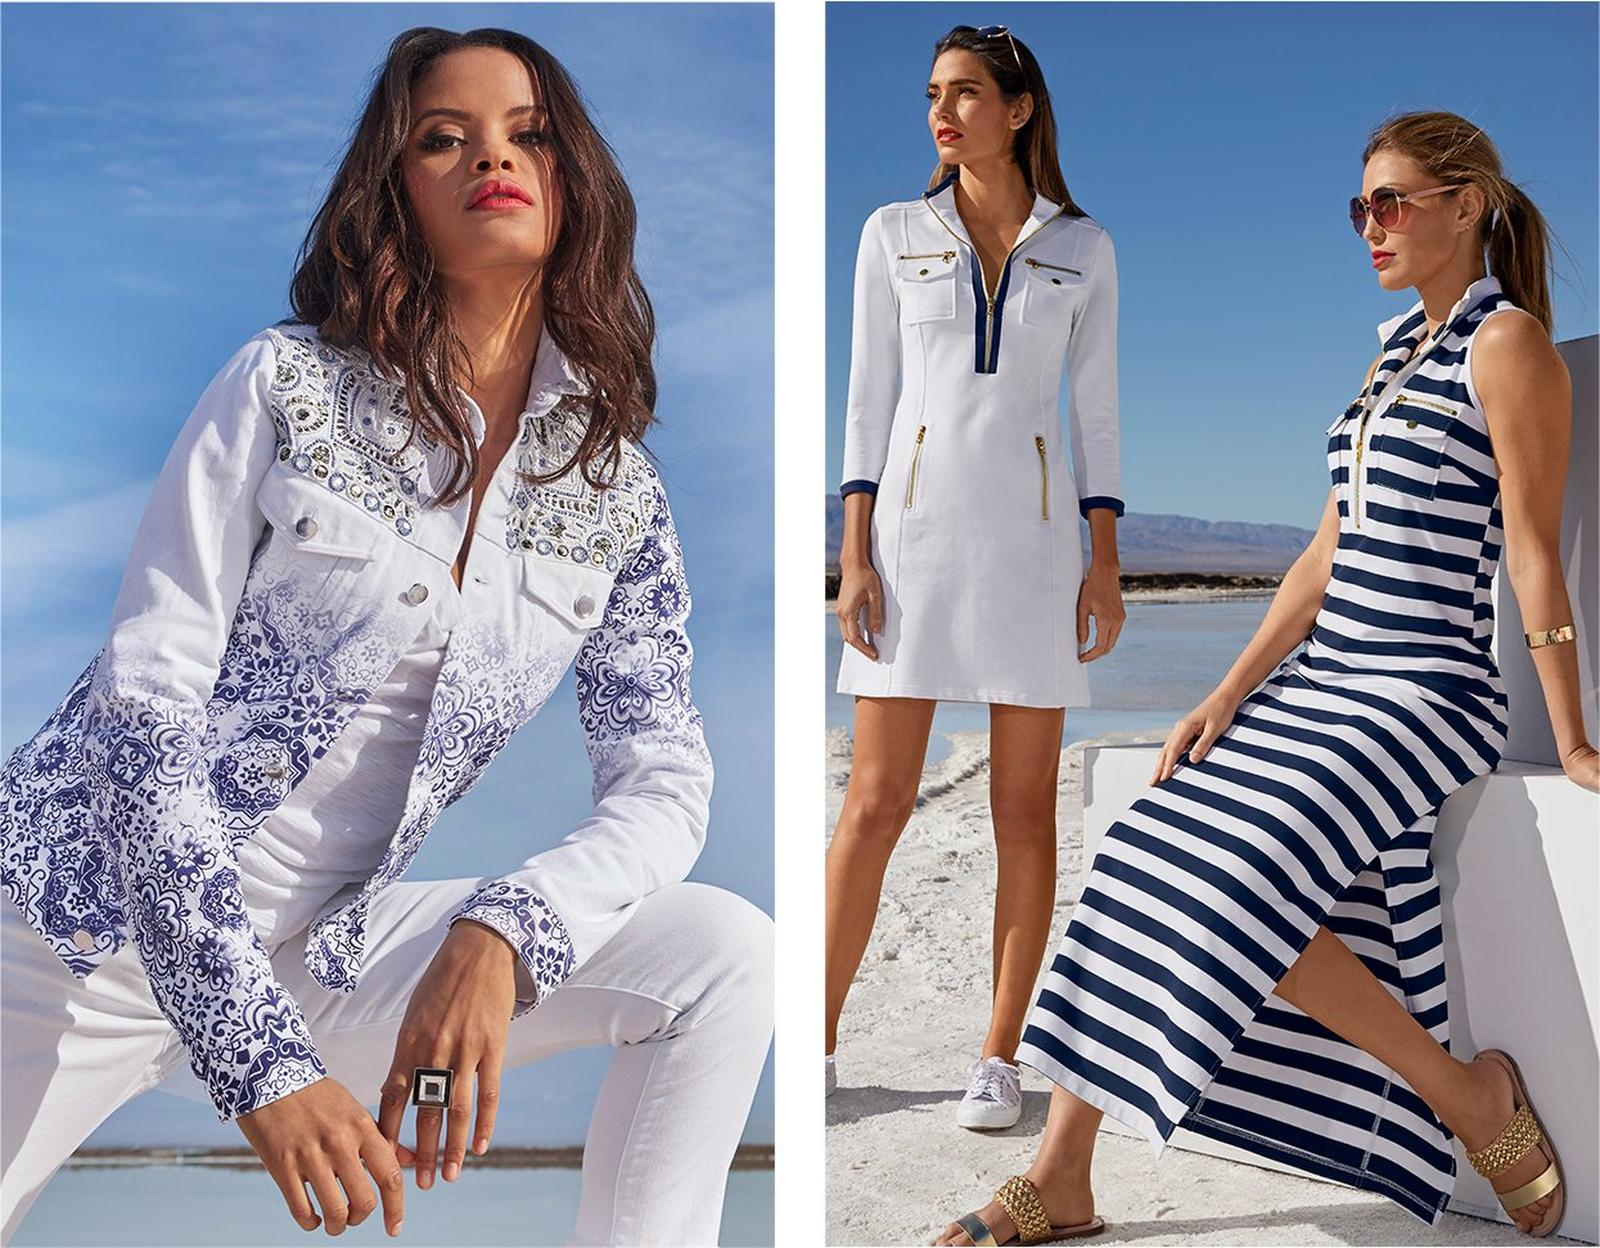 left model wearing a white and blue embellished denim jacket, white v-neck tee shirt, and white jeans. middle model wearing a white and navy chic zip long sleeve dress. right model wearing a navy and white striped chic zip maxi dress.